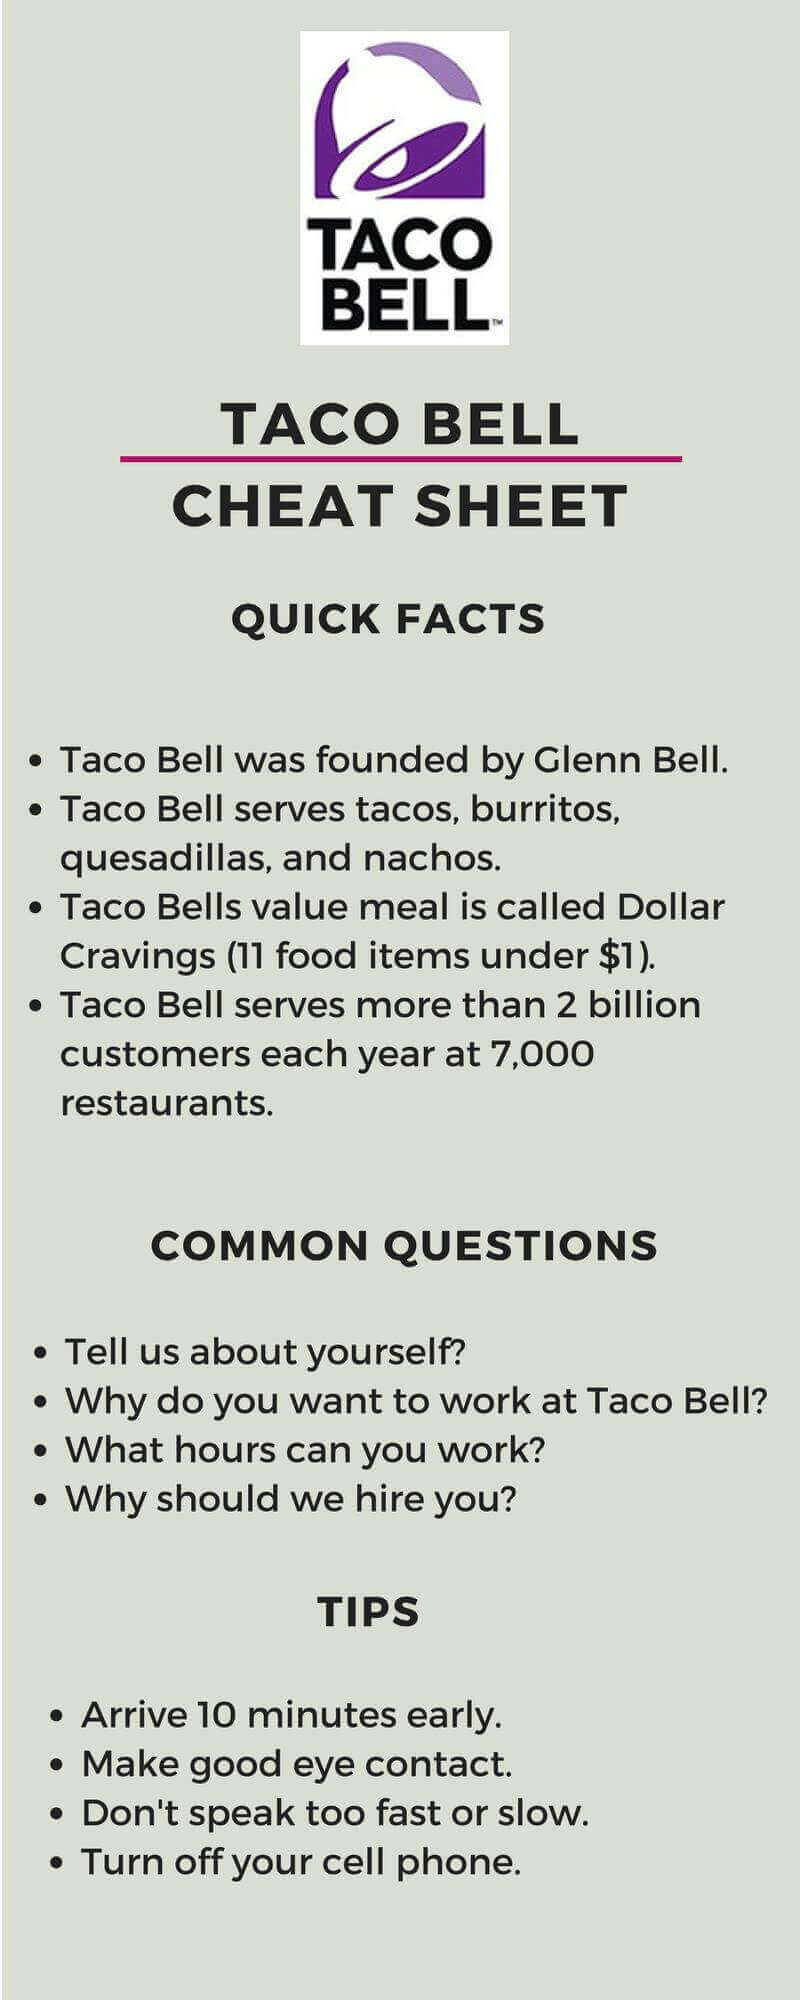 Taco Bell Interview Questions [Includes Best Answers]